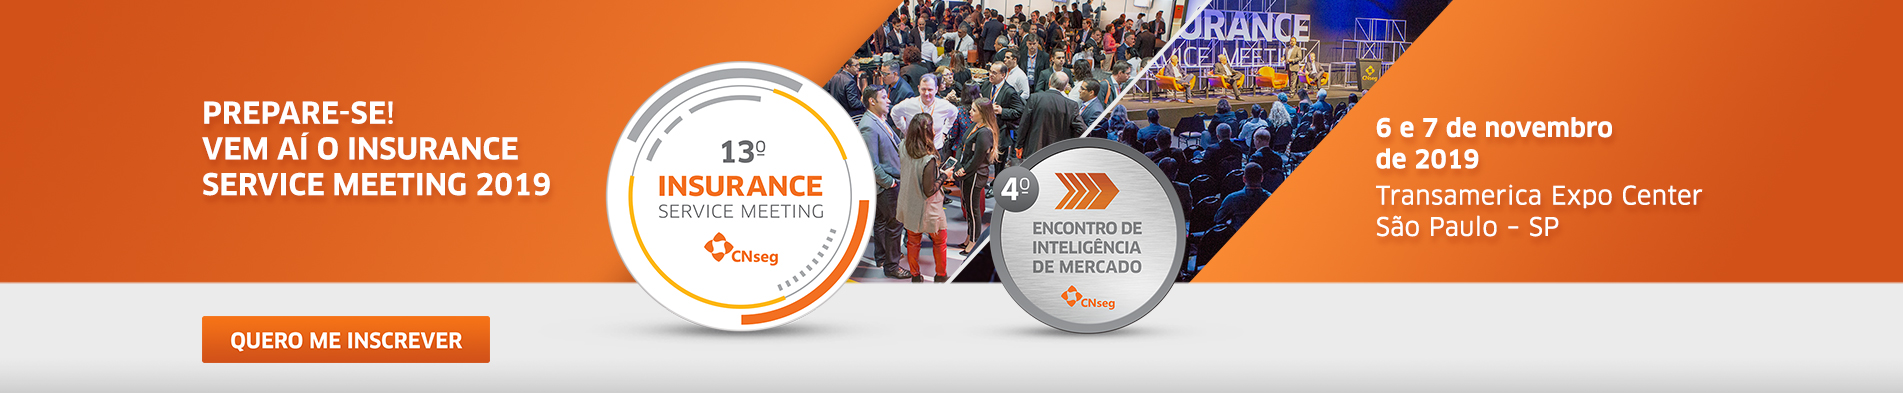 13º Insurance Service Meeting - CNseg